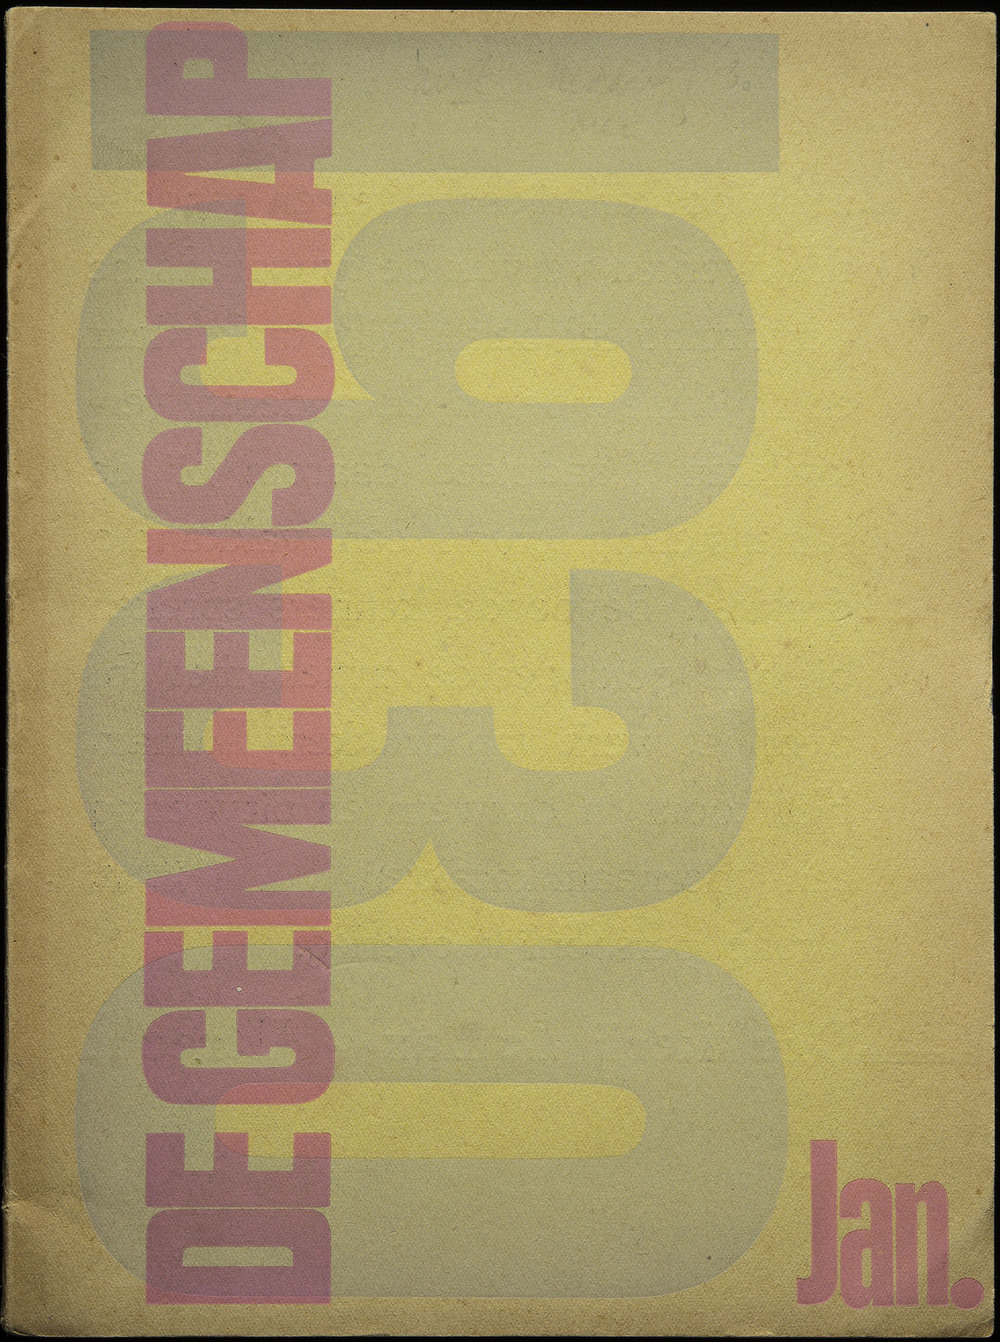 Anonymous, cover design of De Gemeenschap, Utrecht, 1930, 18.6 x 25 cm